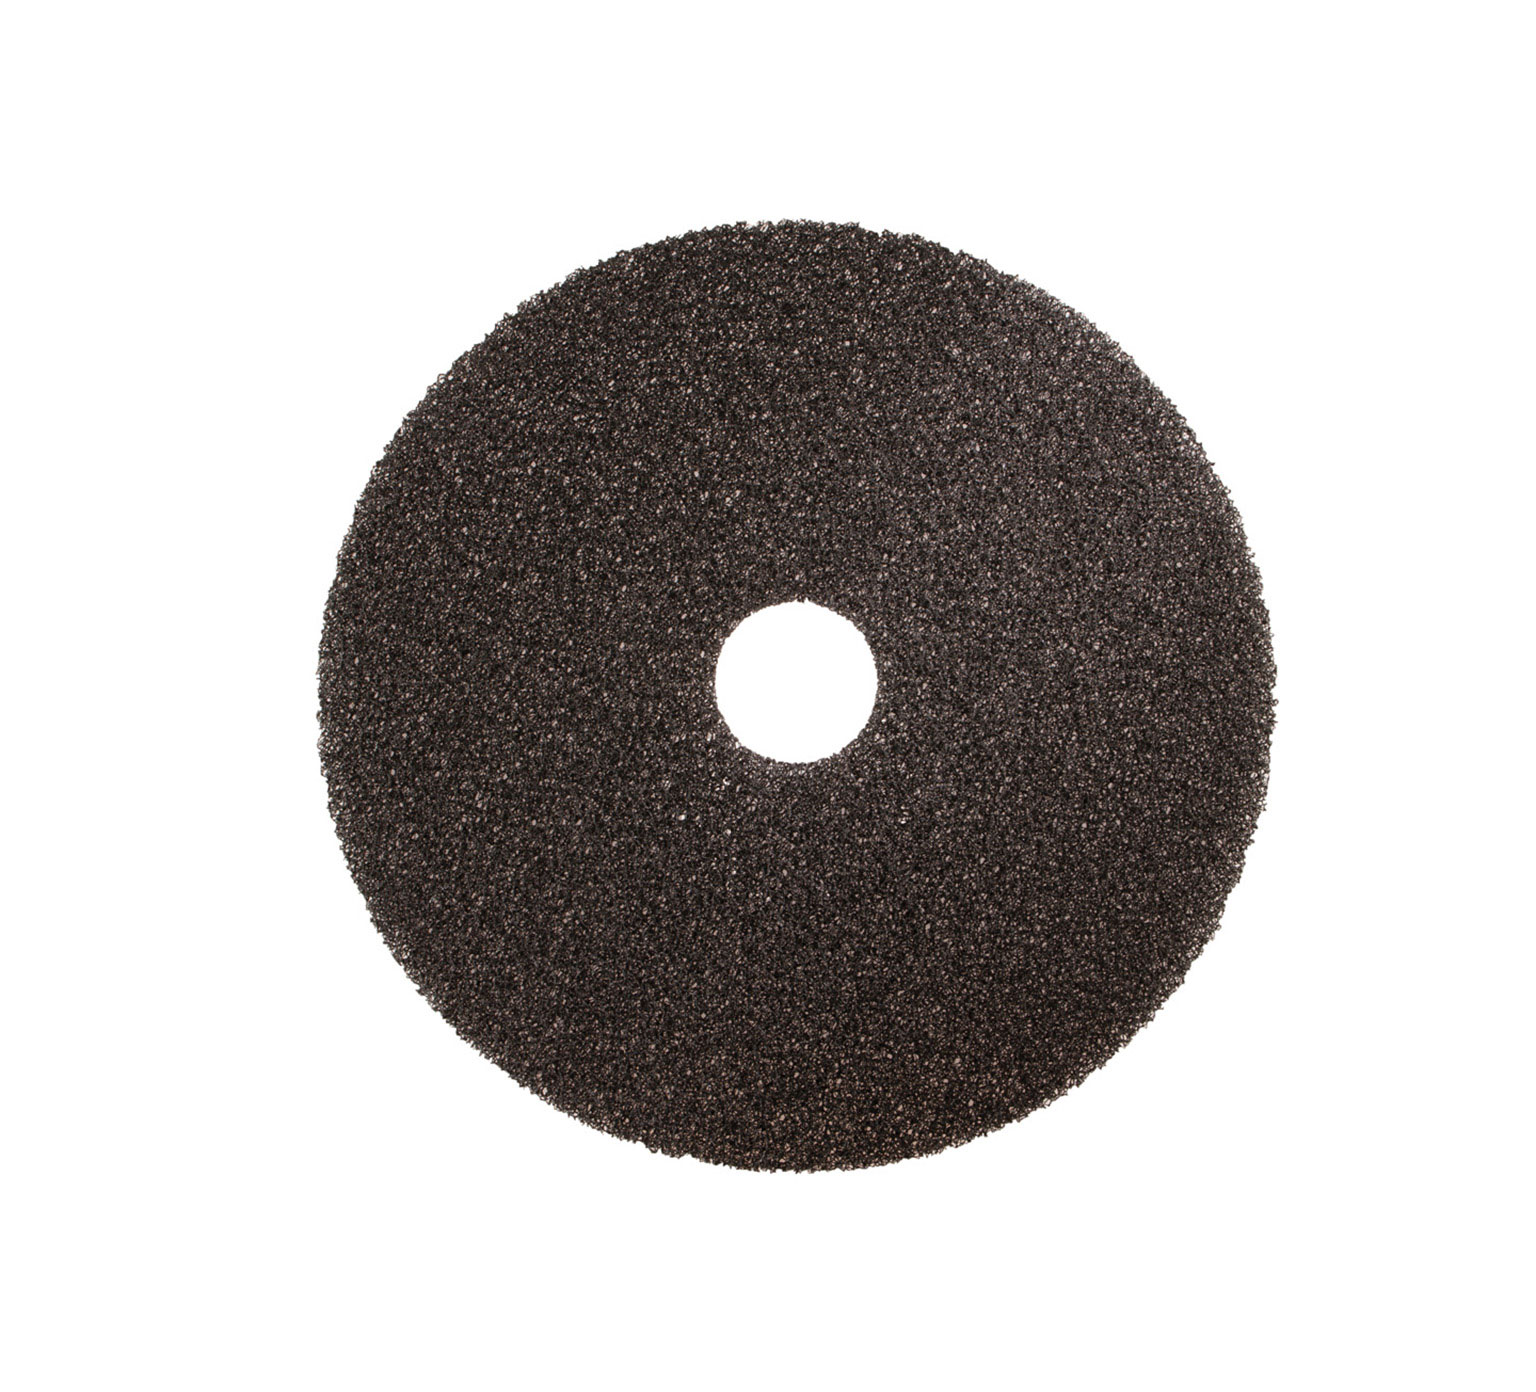 370094 3M High Productivity Stripping Pad – 20 in / 508 mm alt 1